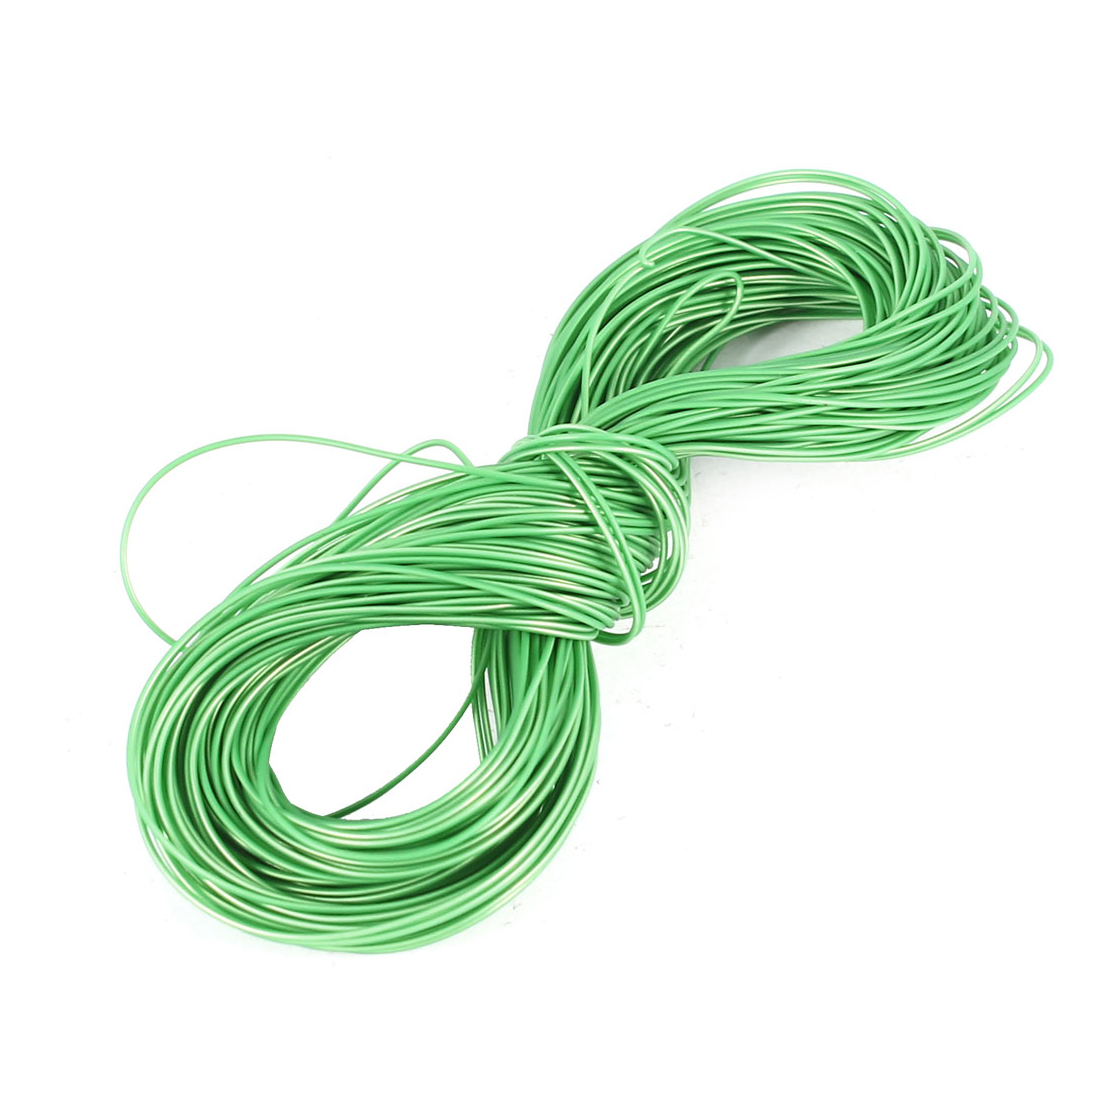 15m 50Ft 24AWG Hi-Temp High Tempreture PTFE Wrap Cable Wire Cord Green